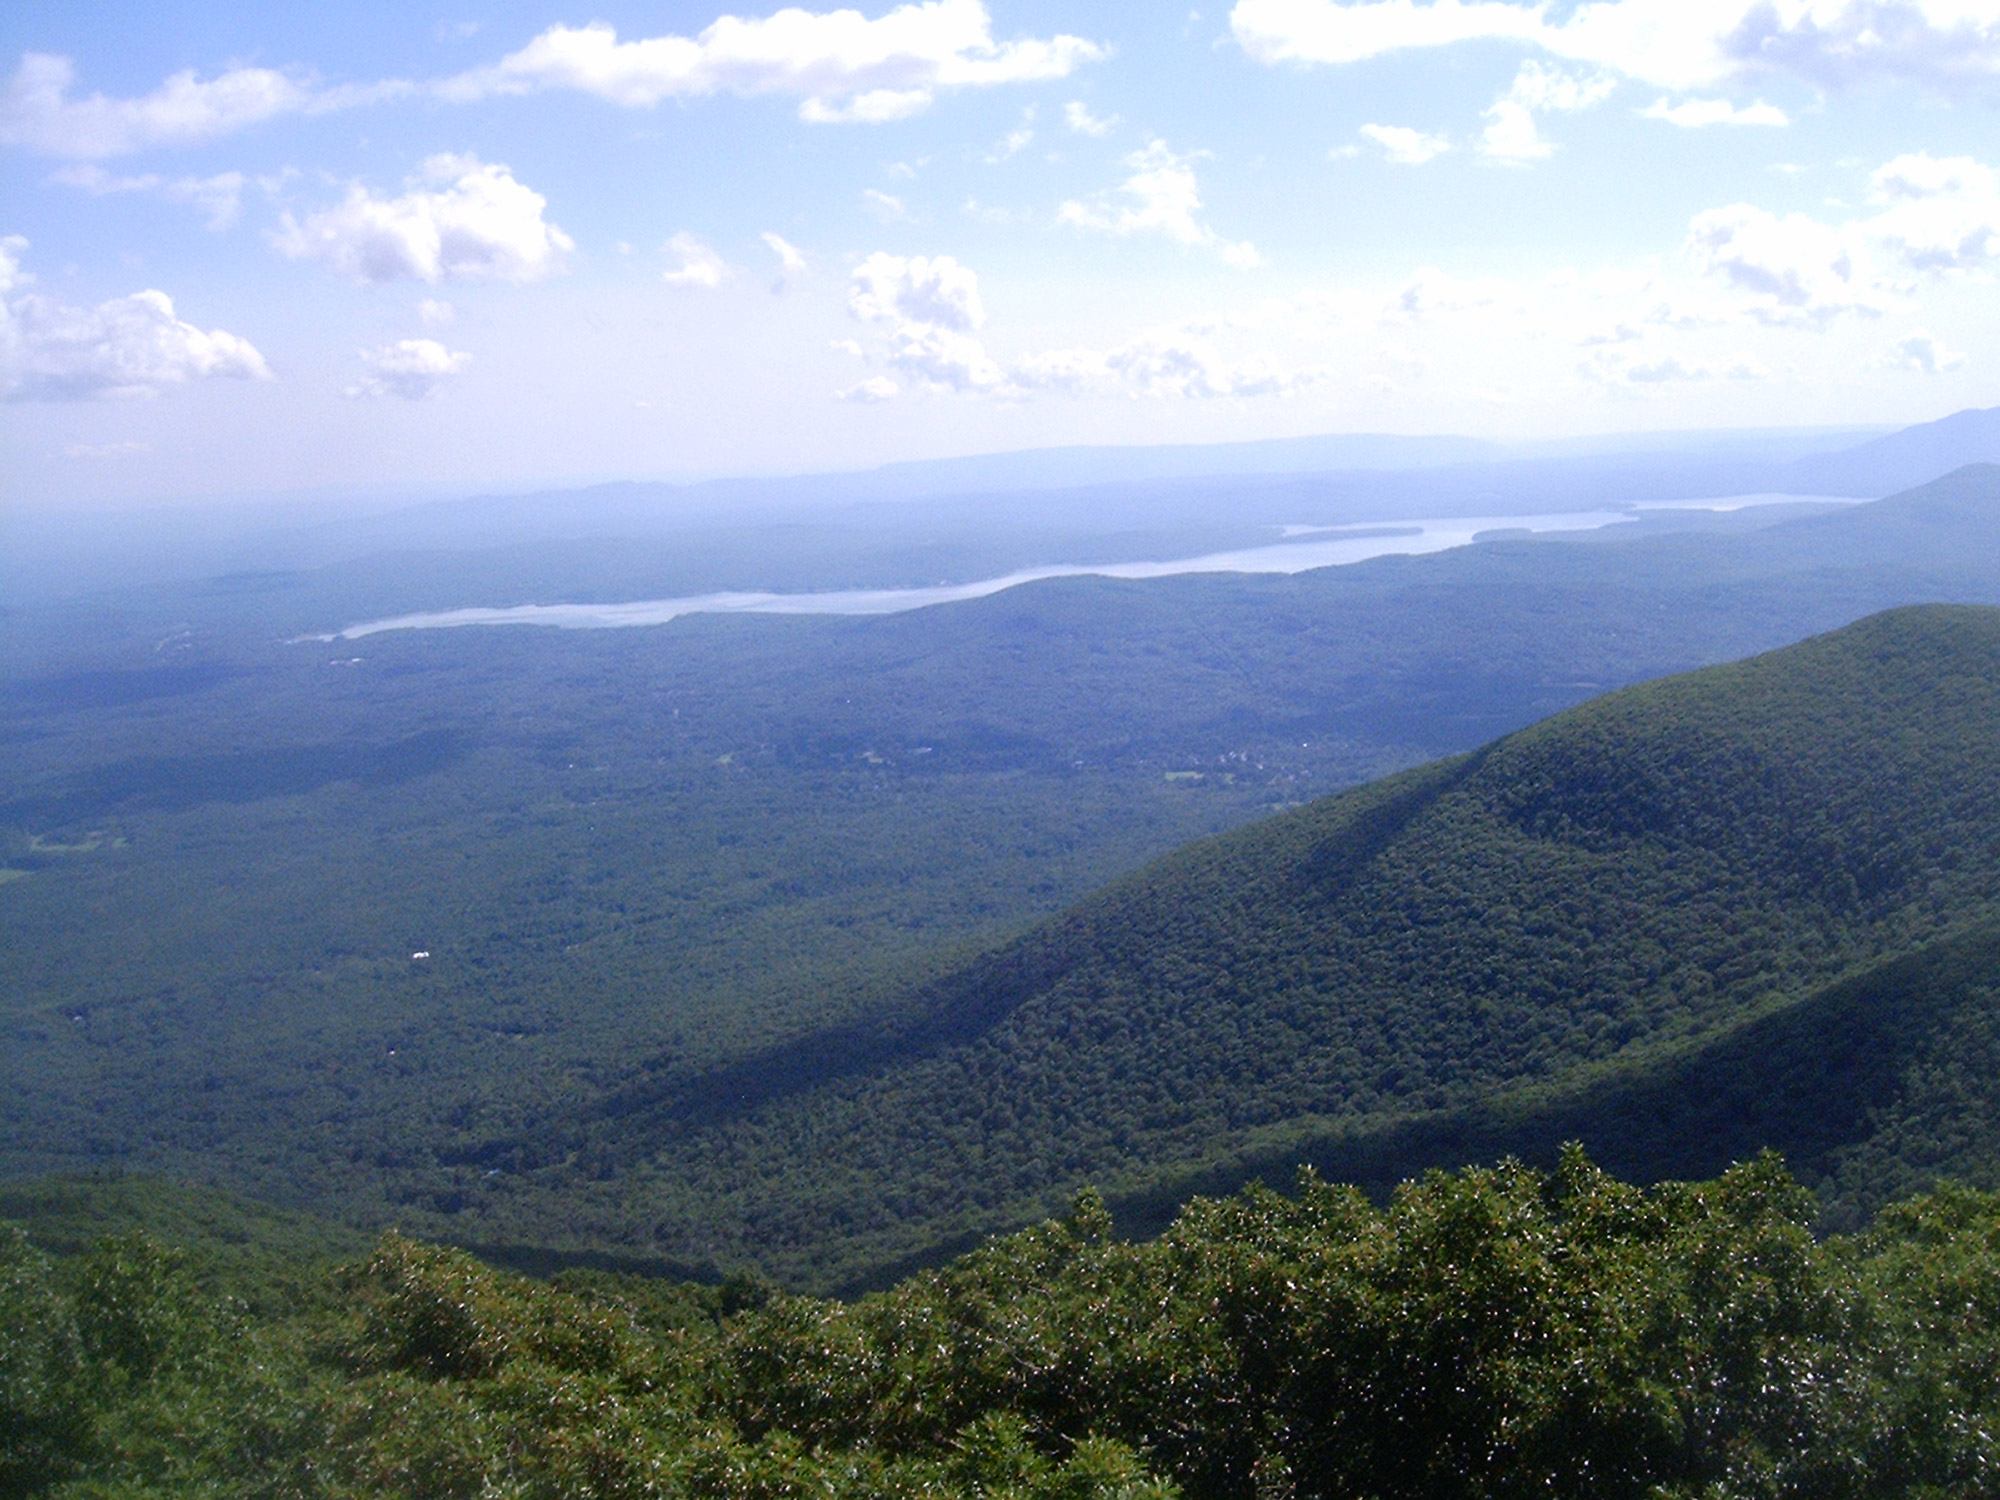 Overlook_Mountain_Fire_Tower_View_1